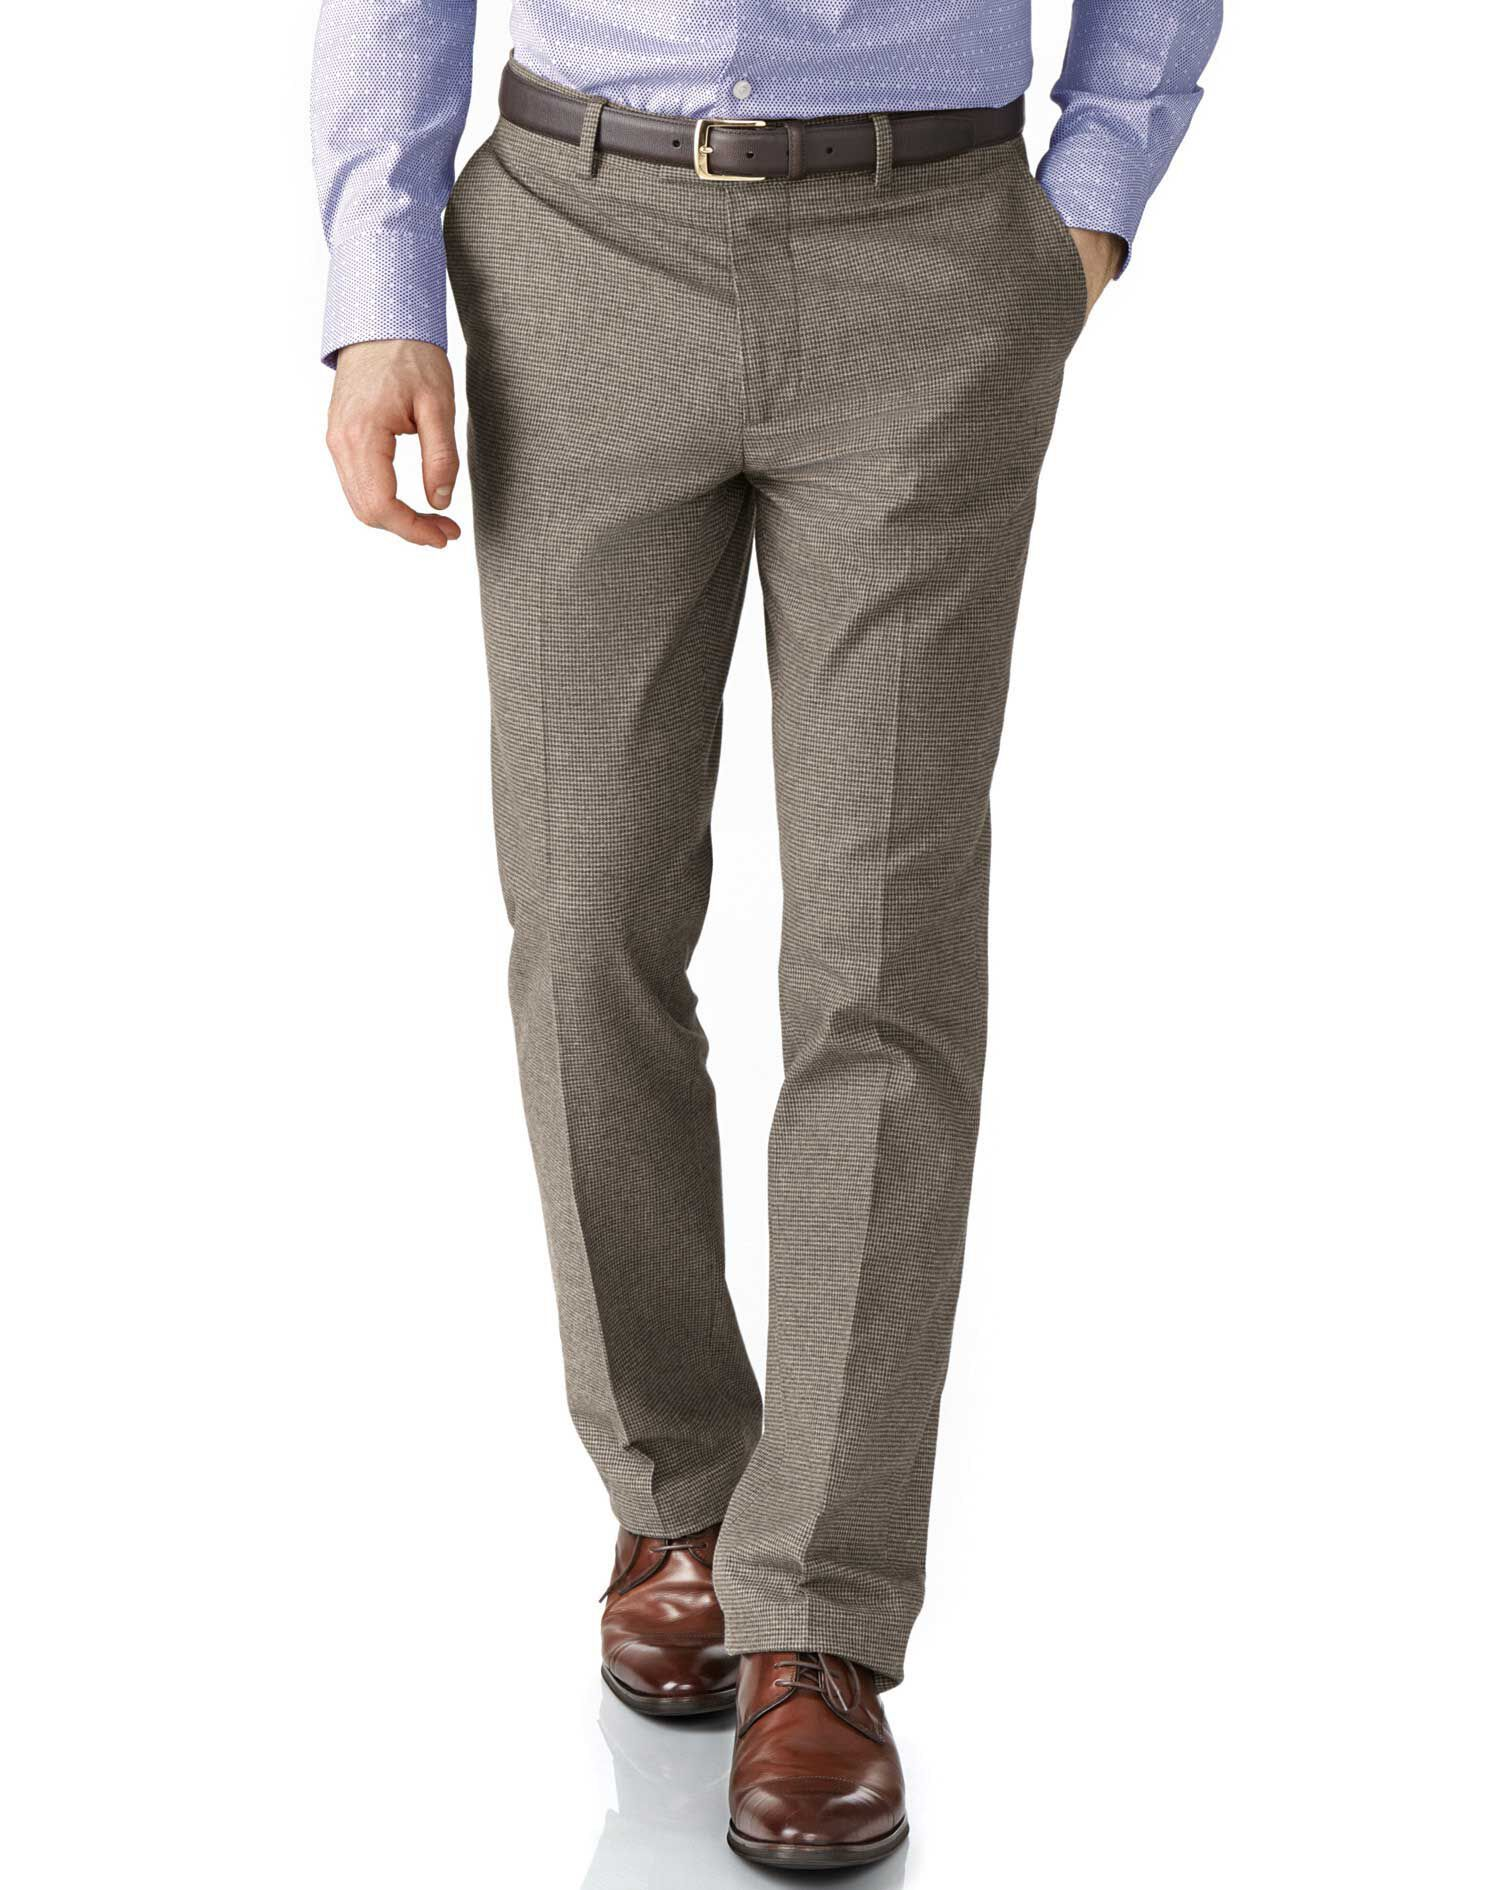 Beige Slim Fit Cotton Flannel Trouser Size W34 L34 by Charles Tyrwhitt